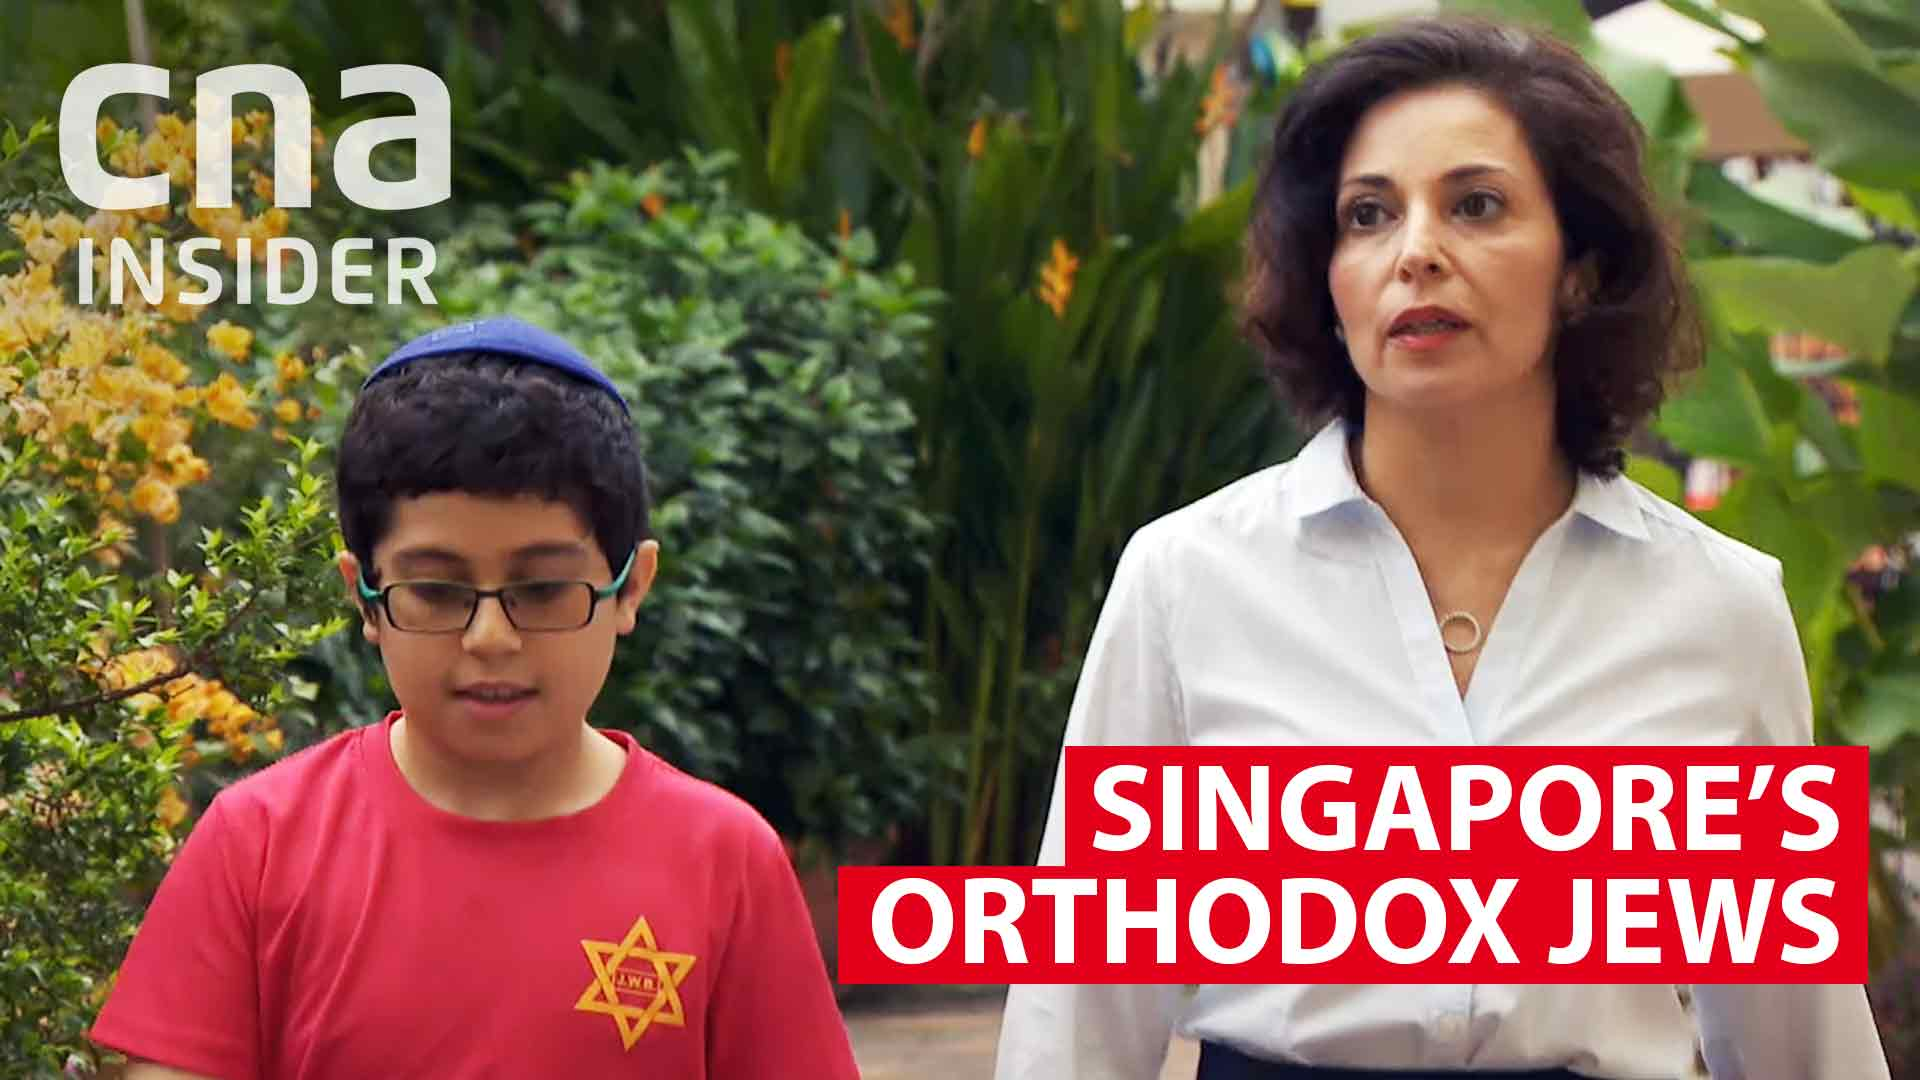 Singapore's Orthodox Jews